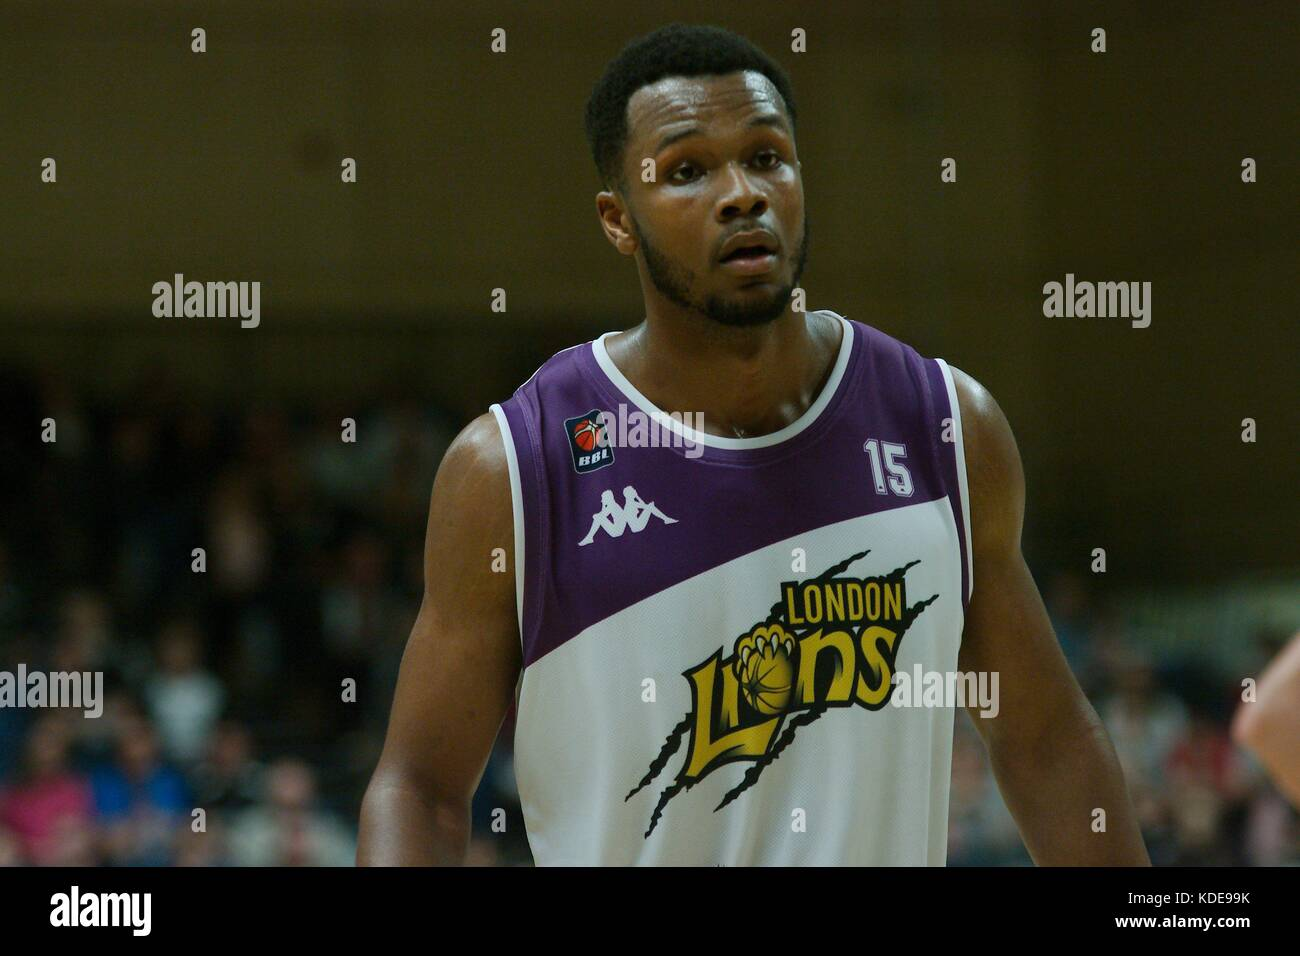 Newcastle upon Tyne, England, 13 October 2017. Demonte Flannigan playing for London Lions in a British Basketball - Stock Image